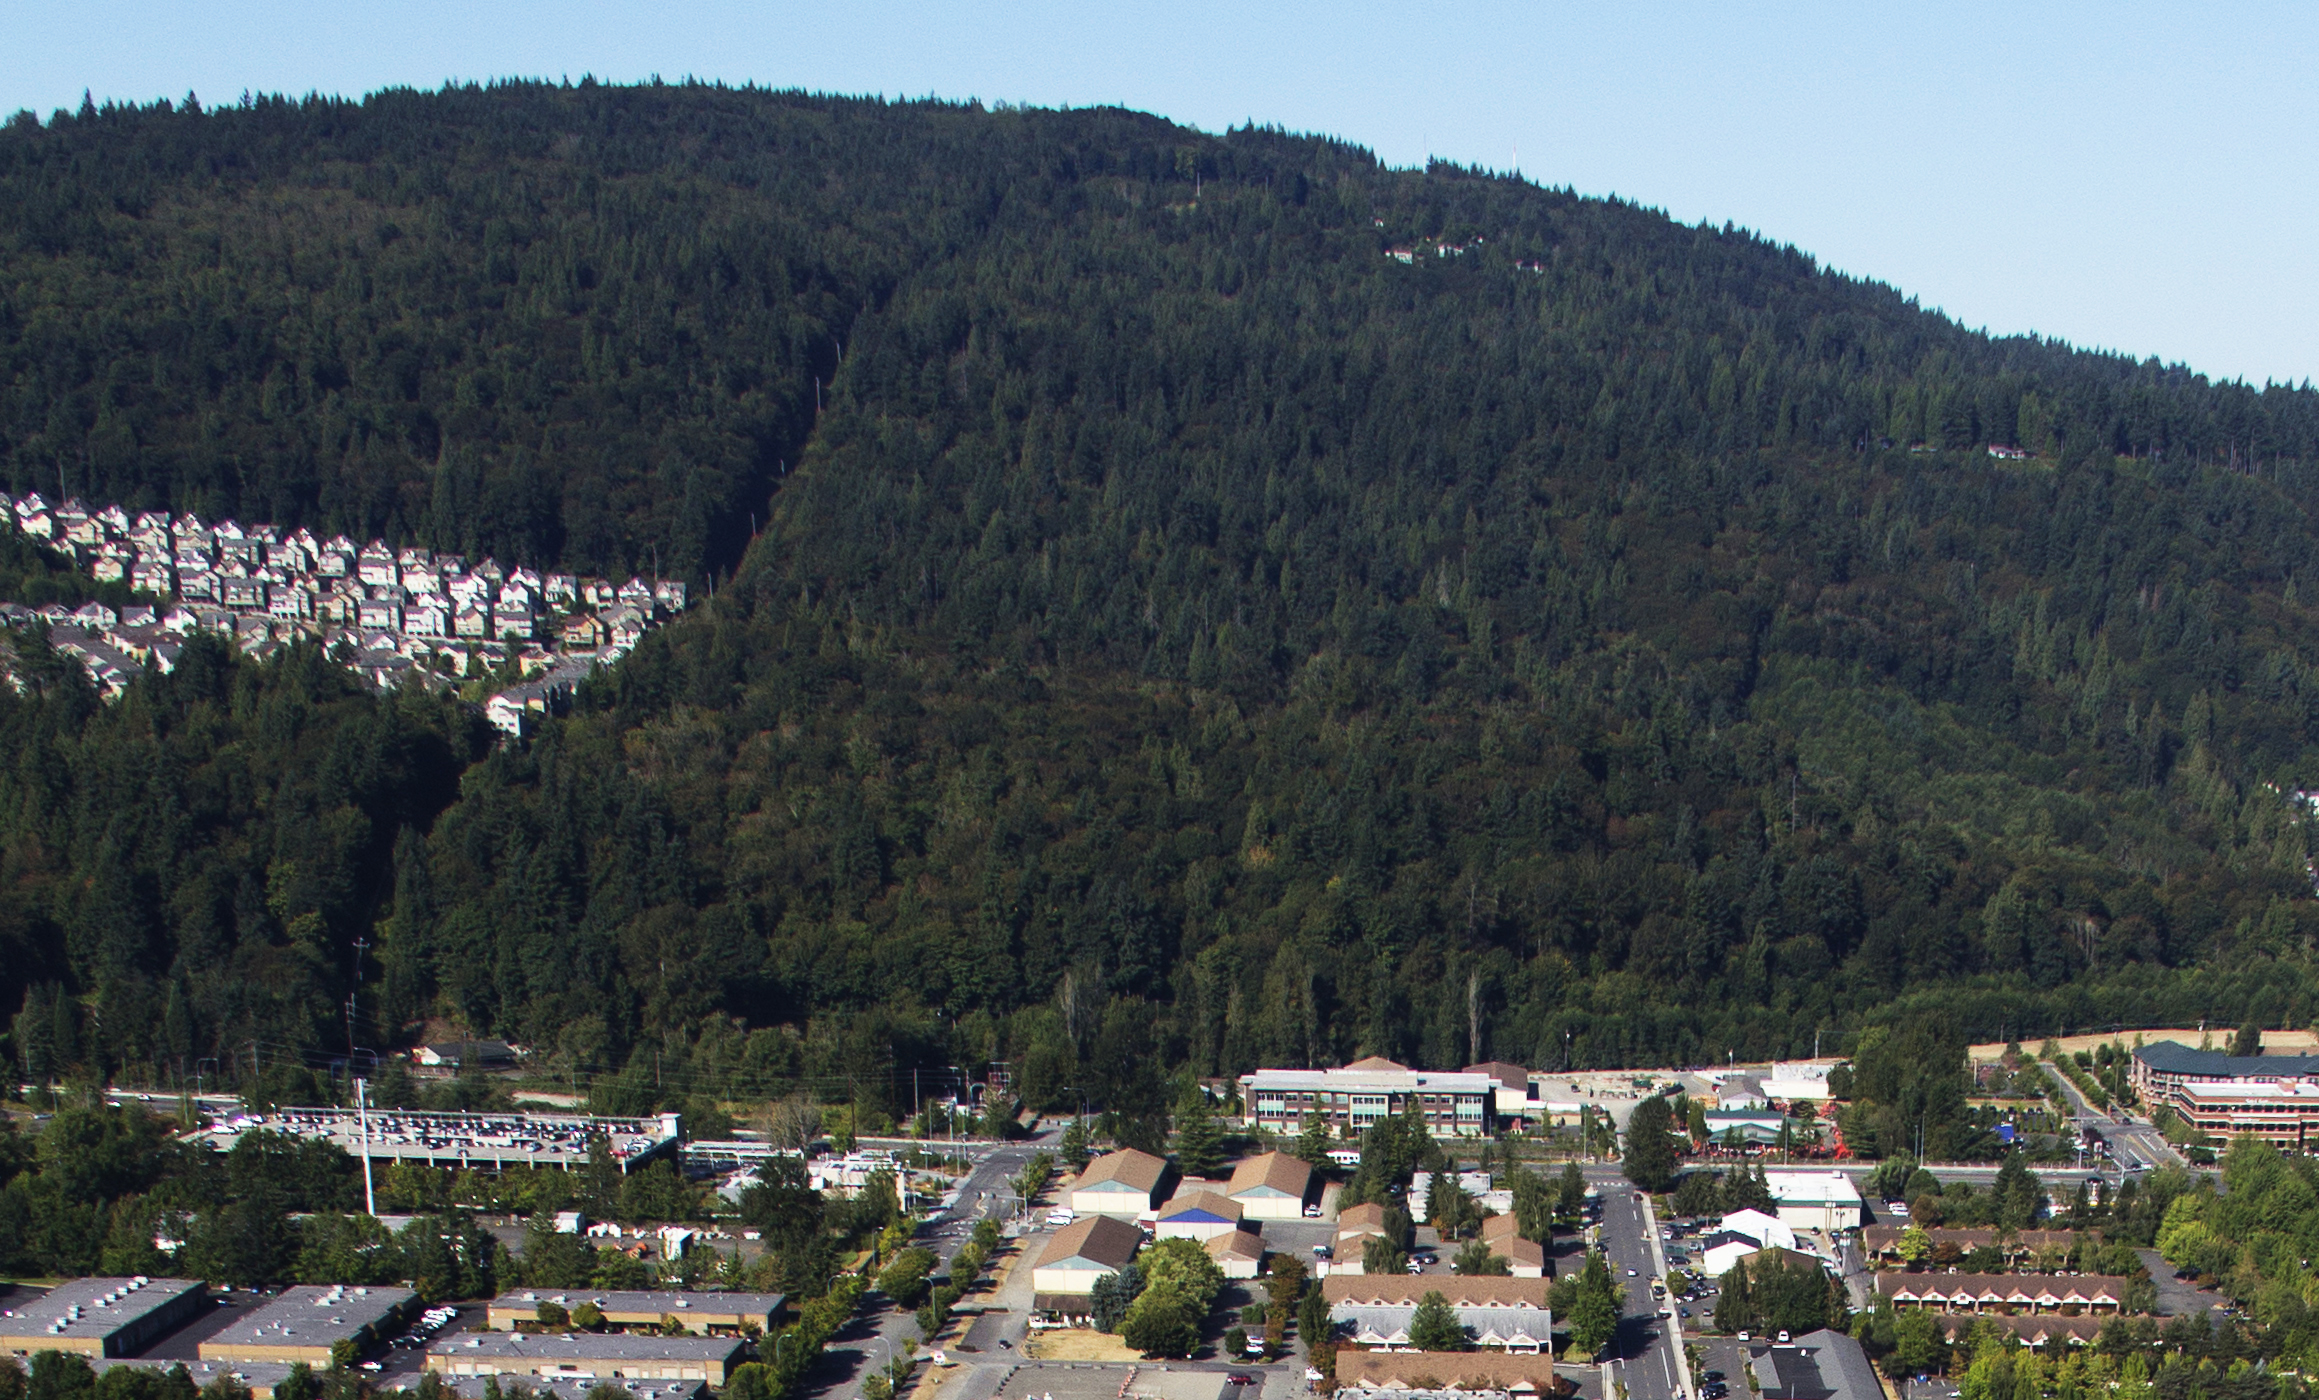 The Bergsma property is the forested area to the right of the Talus development.